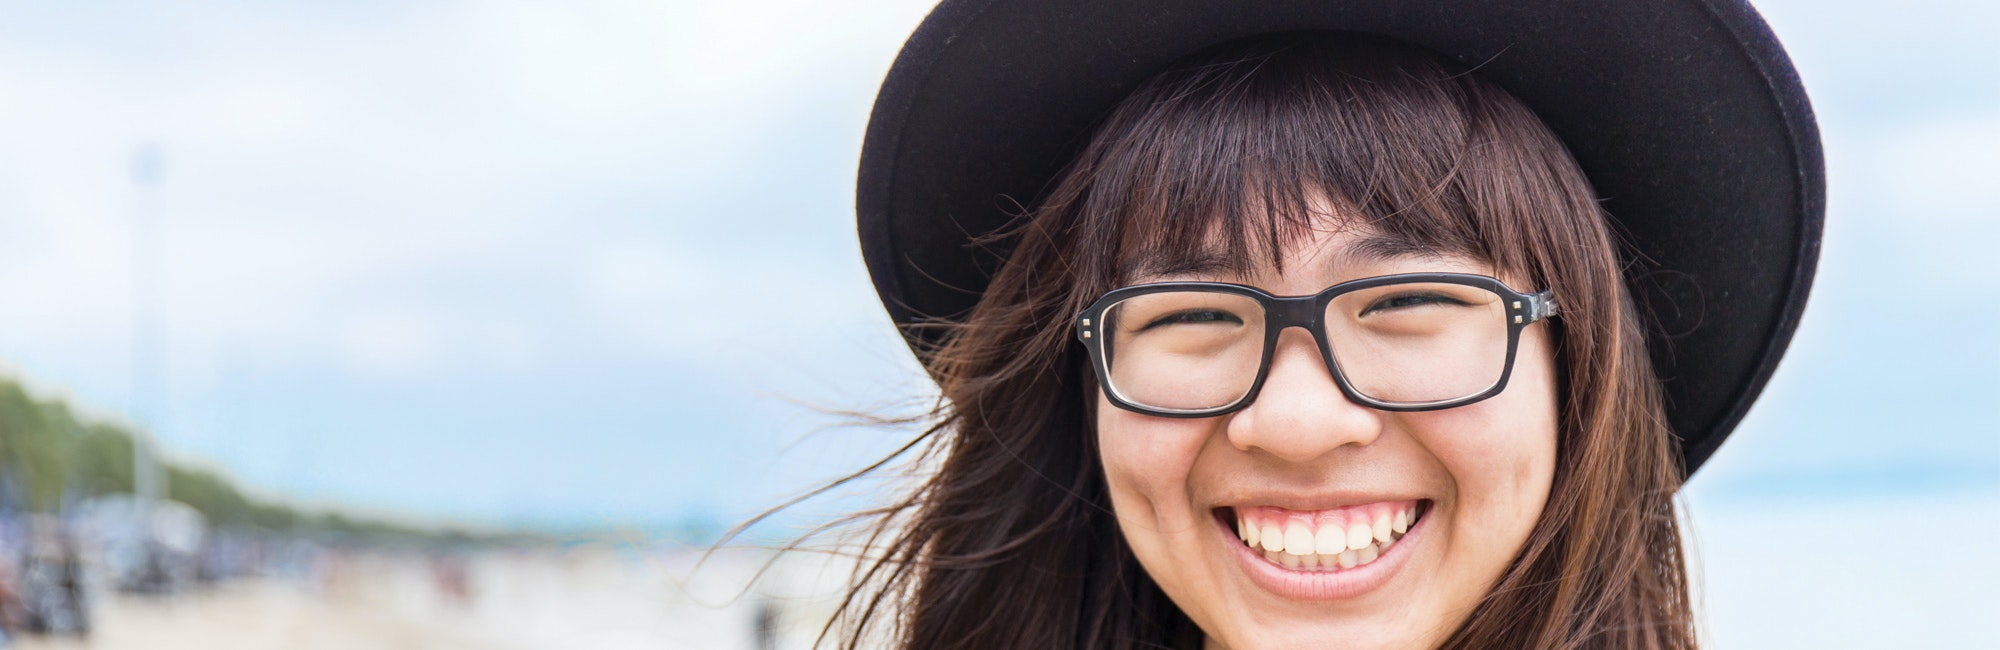 a close up shot of a girl with big smile and wear hat with glasses on